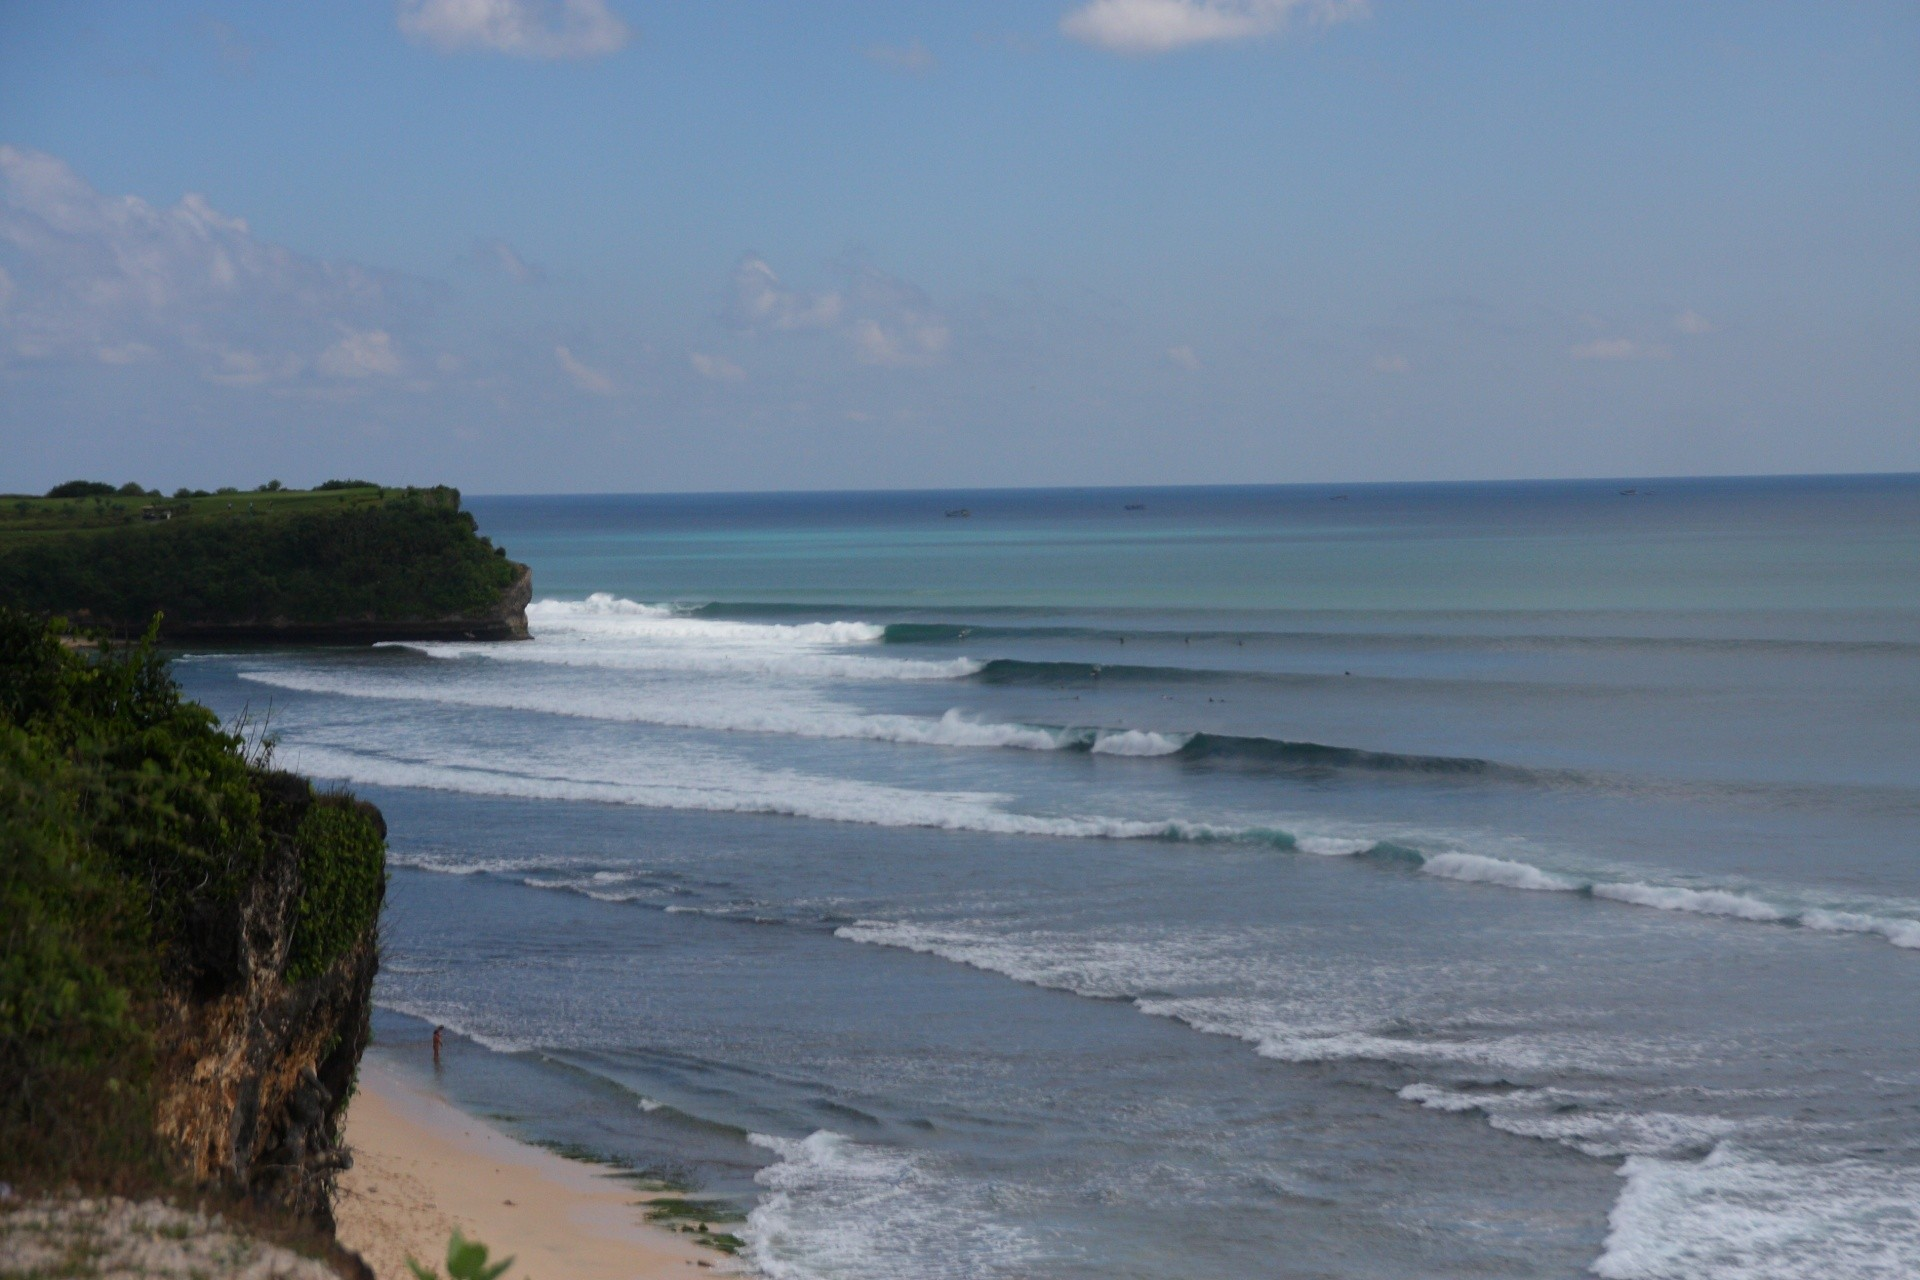 Guff's photo of Balangan